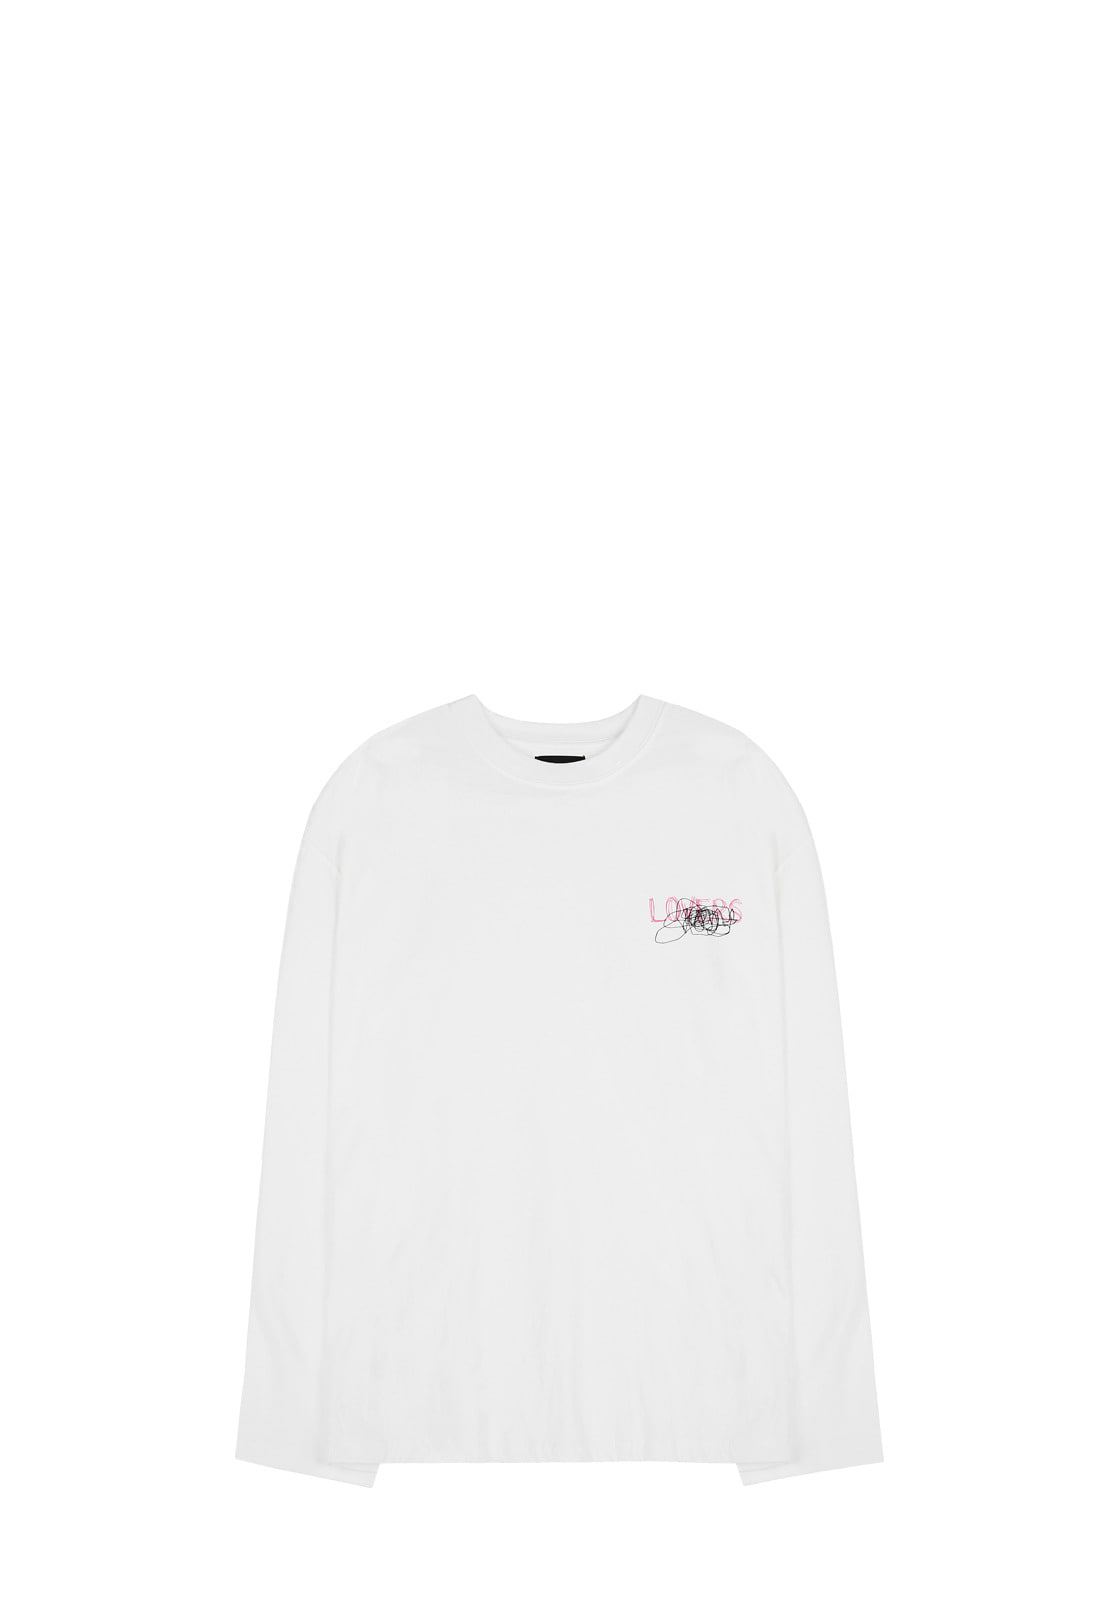 V341 GRAFFITI LONG-SLEEVE  WHITE